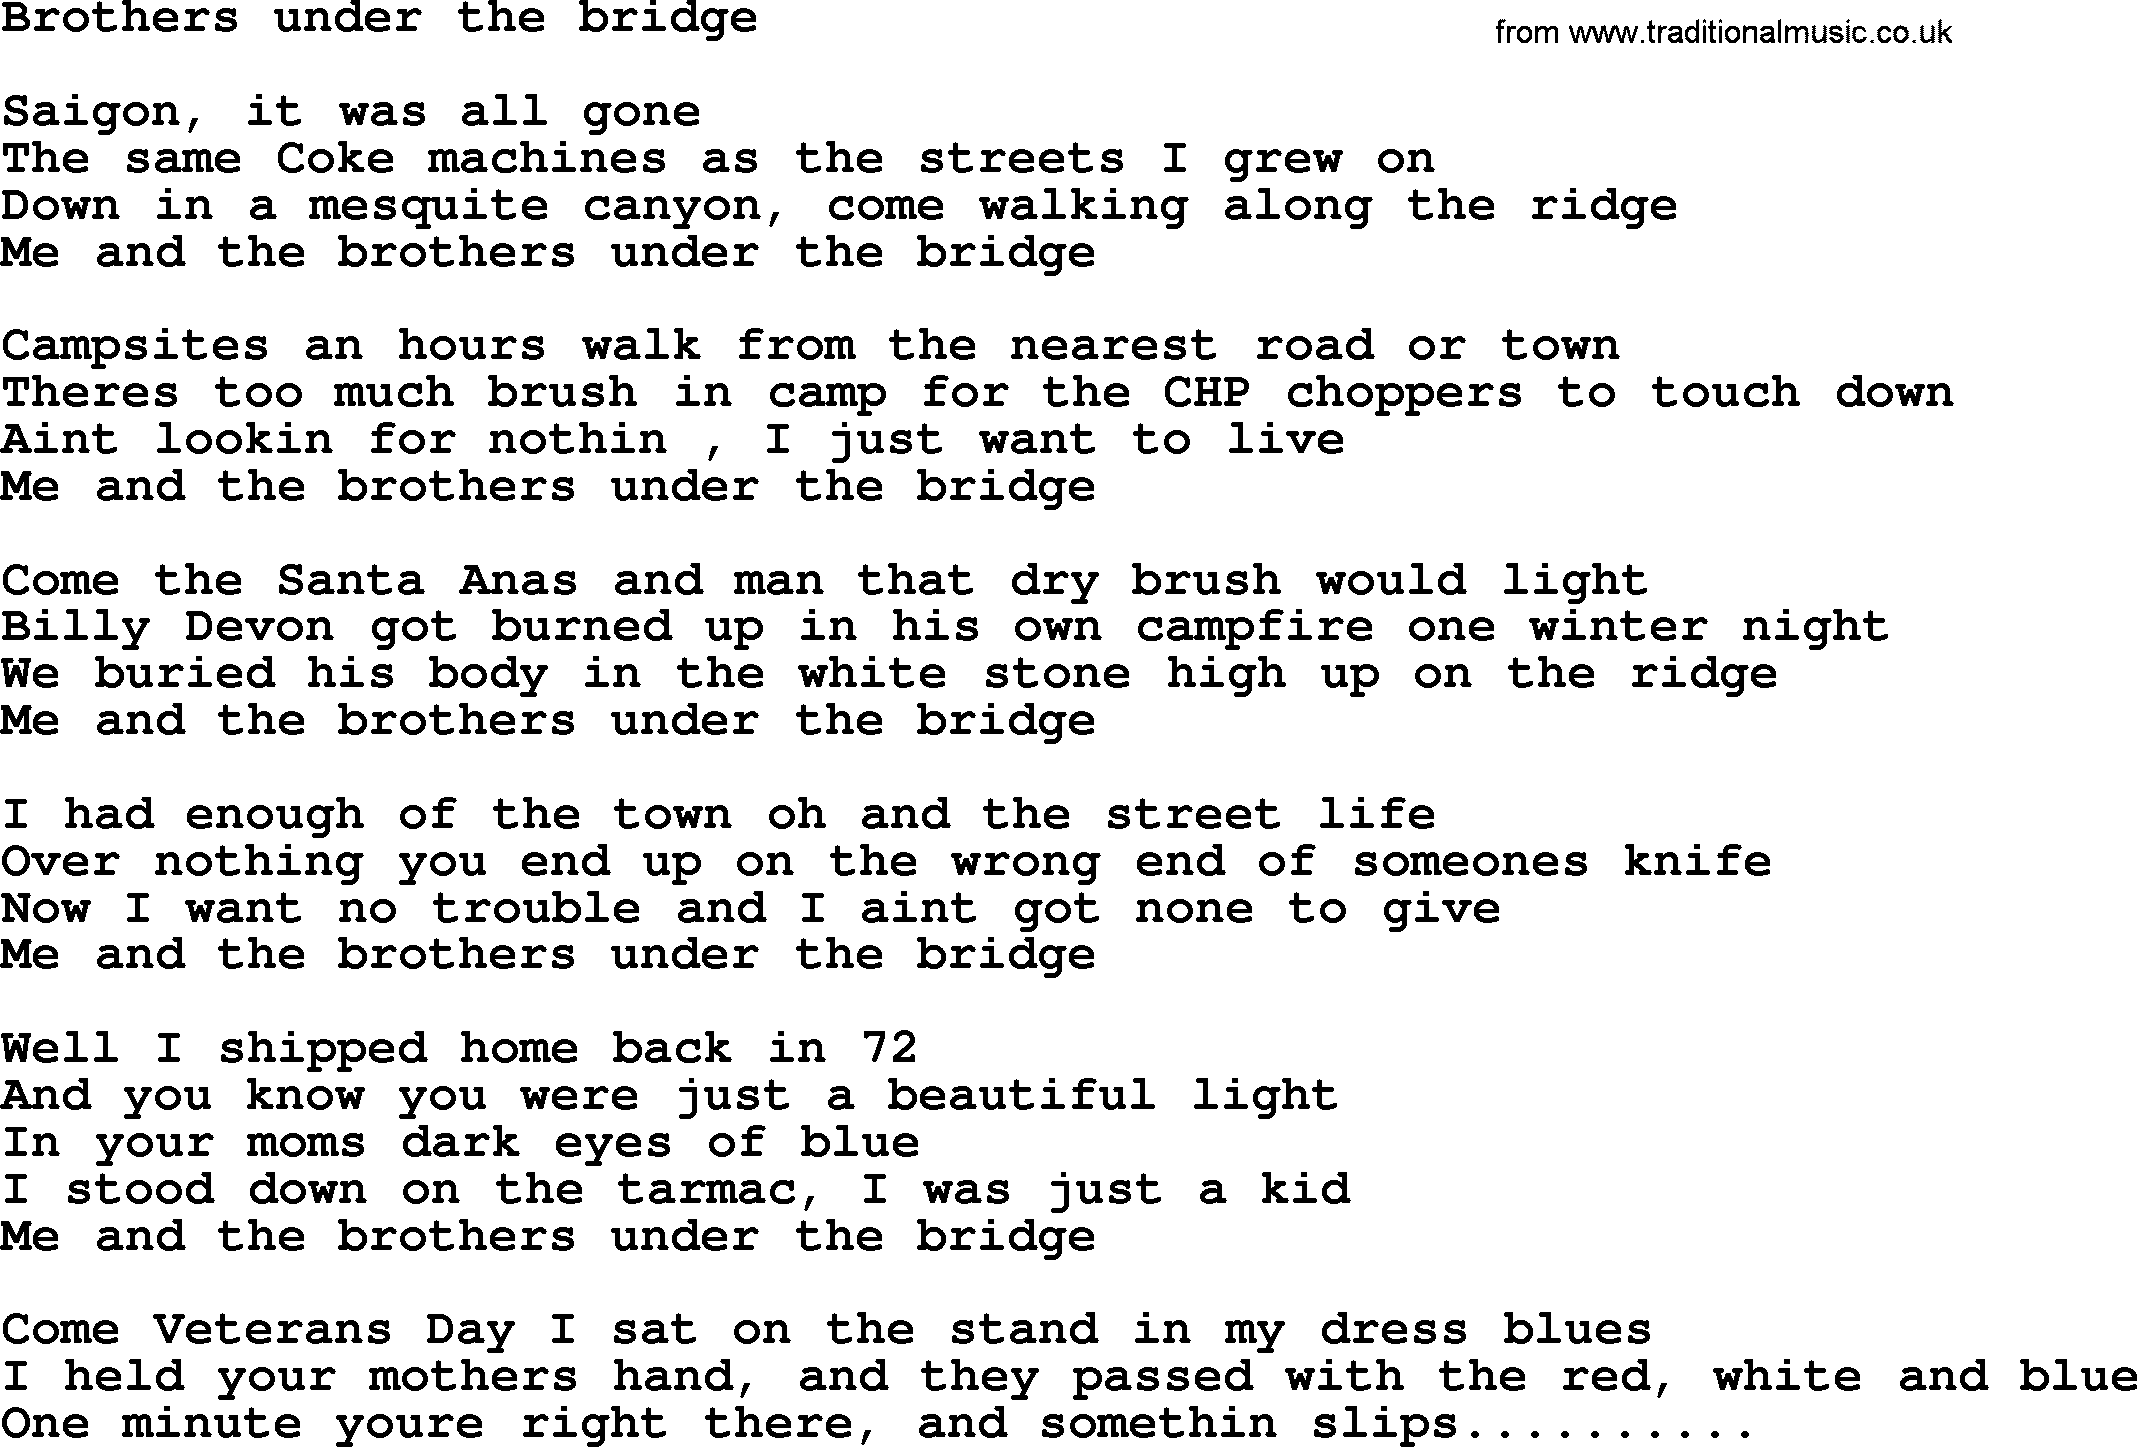 Bruce Springsteen song: Brothers Under The Bridge, lyrics